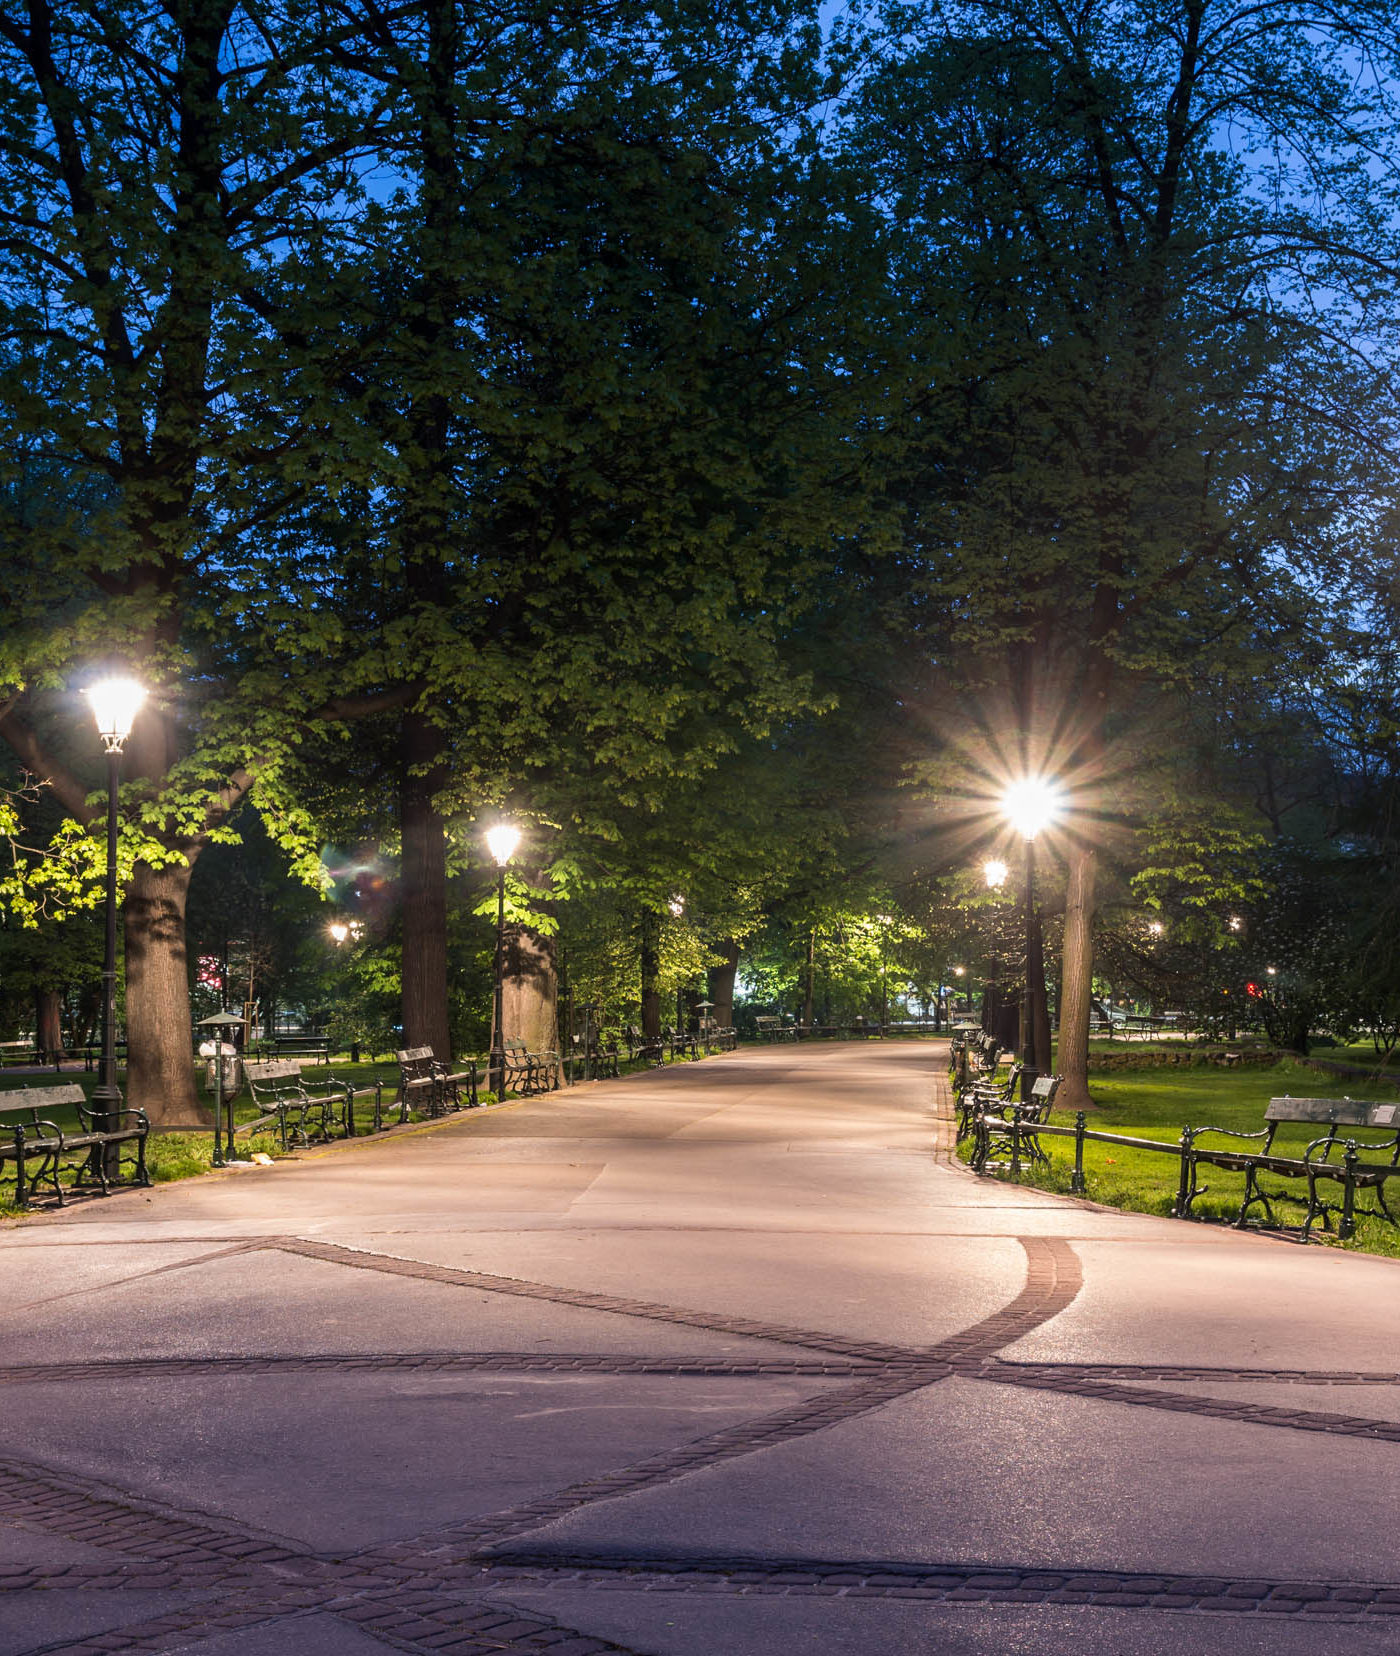 City park path at dusk lighted by LED lights